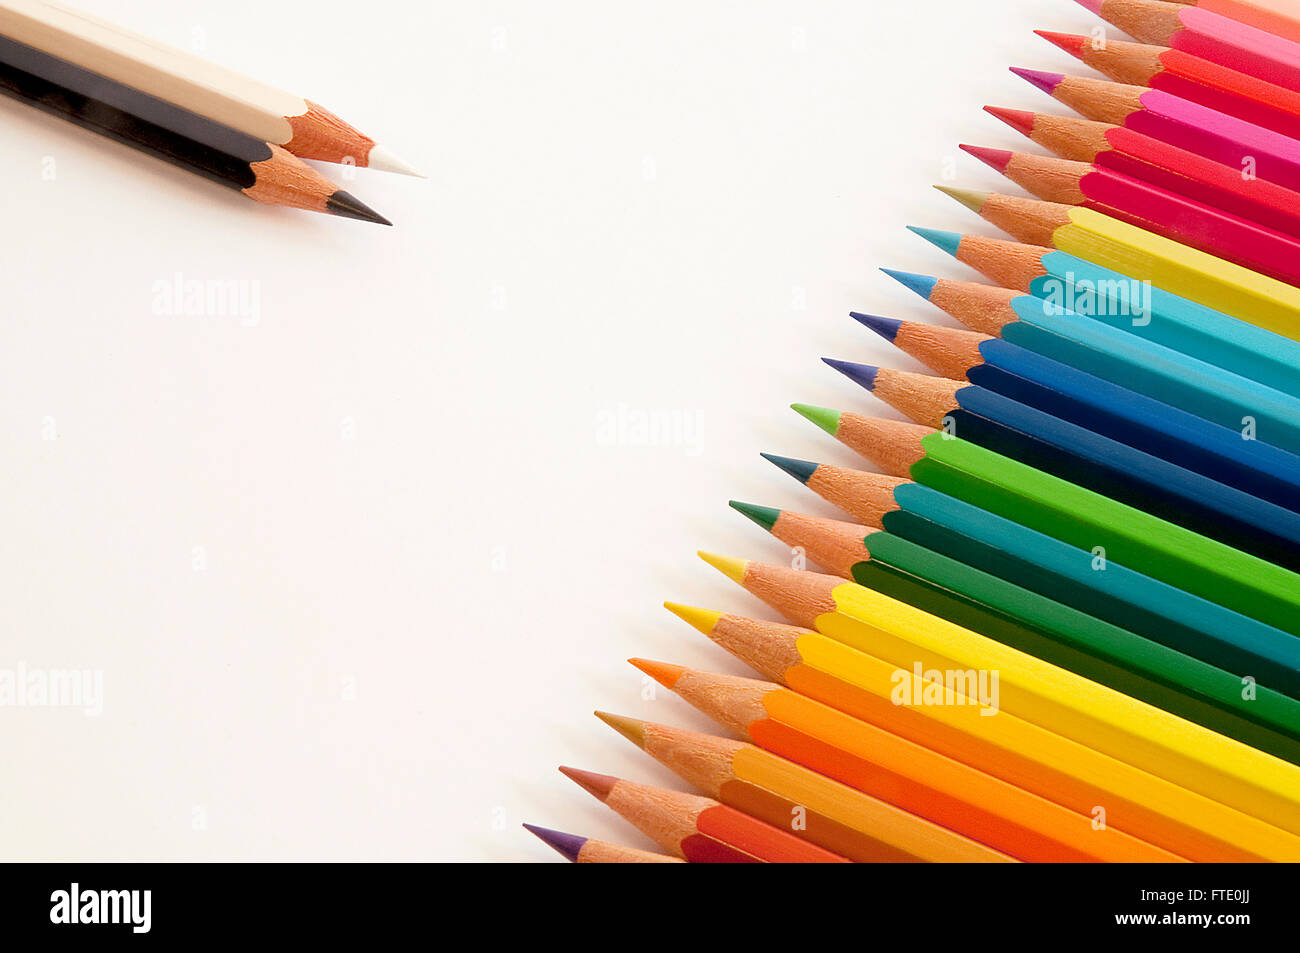 Black and white pencils opposite colored pencils. - Stock Image